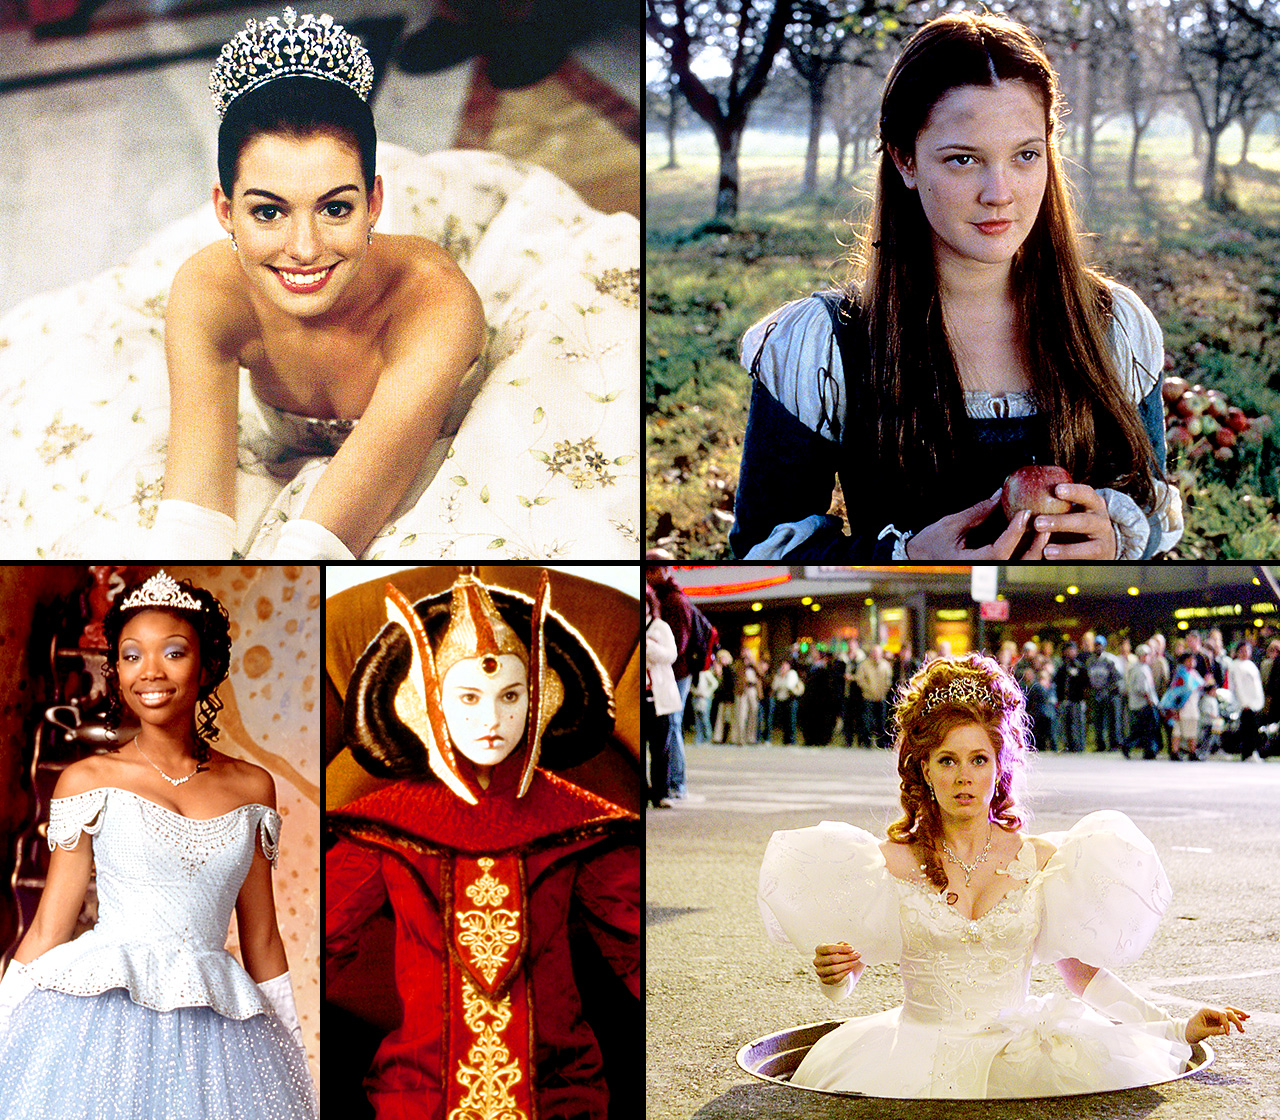 Anne Hathaway , Amy Adams and Audrey Hepburn may not be royalty in real-life, but you'd never know it based on some of their most famous film roles. All three ladies made waves as fictional versions of famous royal figures throughout history: Hathaway proved herself plenty regal with princess roles such as Ella in Ella Enchanted and Mia Thermopolis in the Princess Diaries ; while Adams fought for love with Prince Edward in Enchanted .